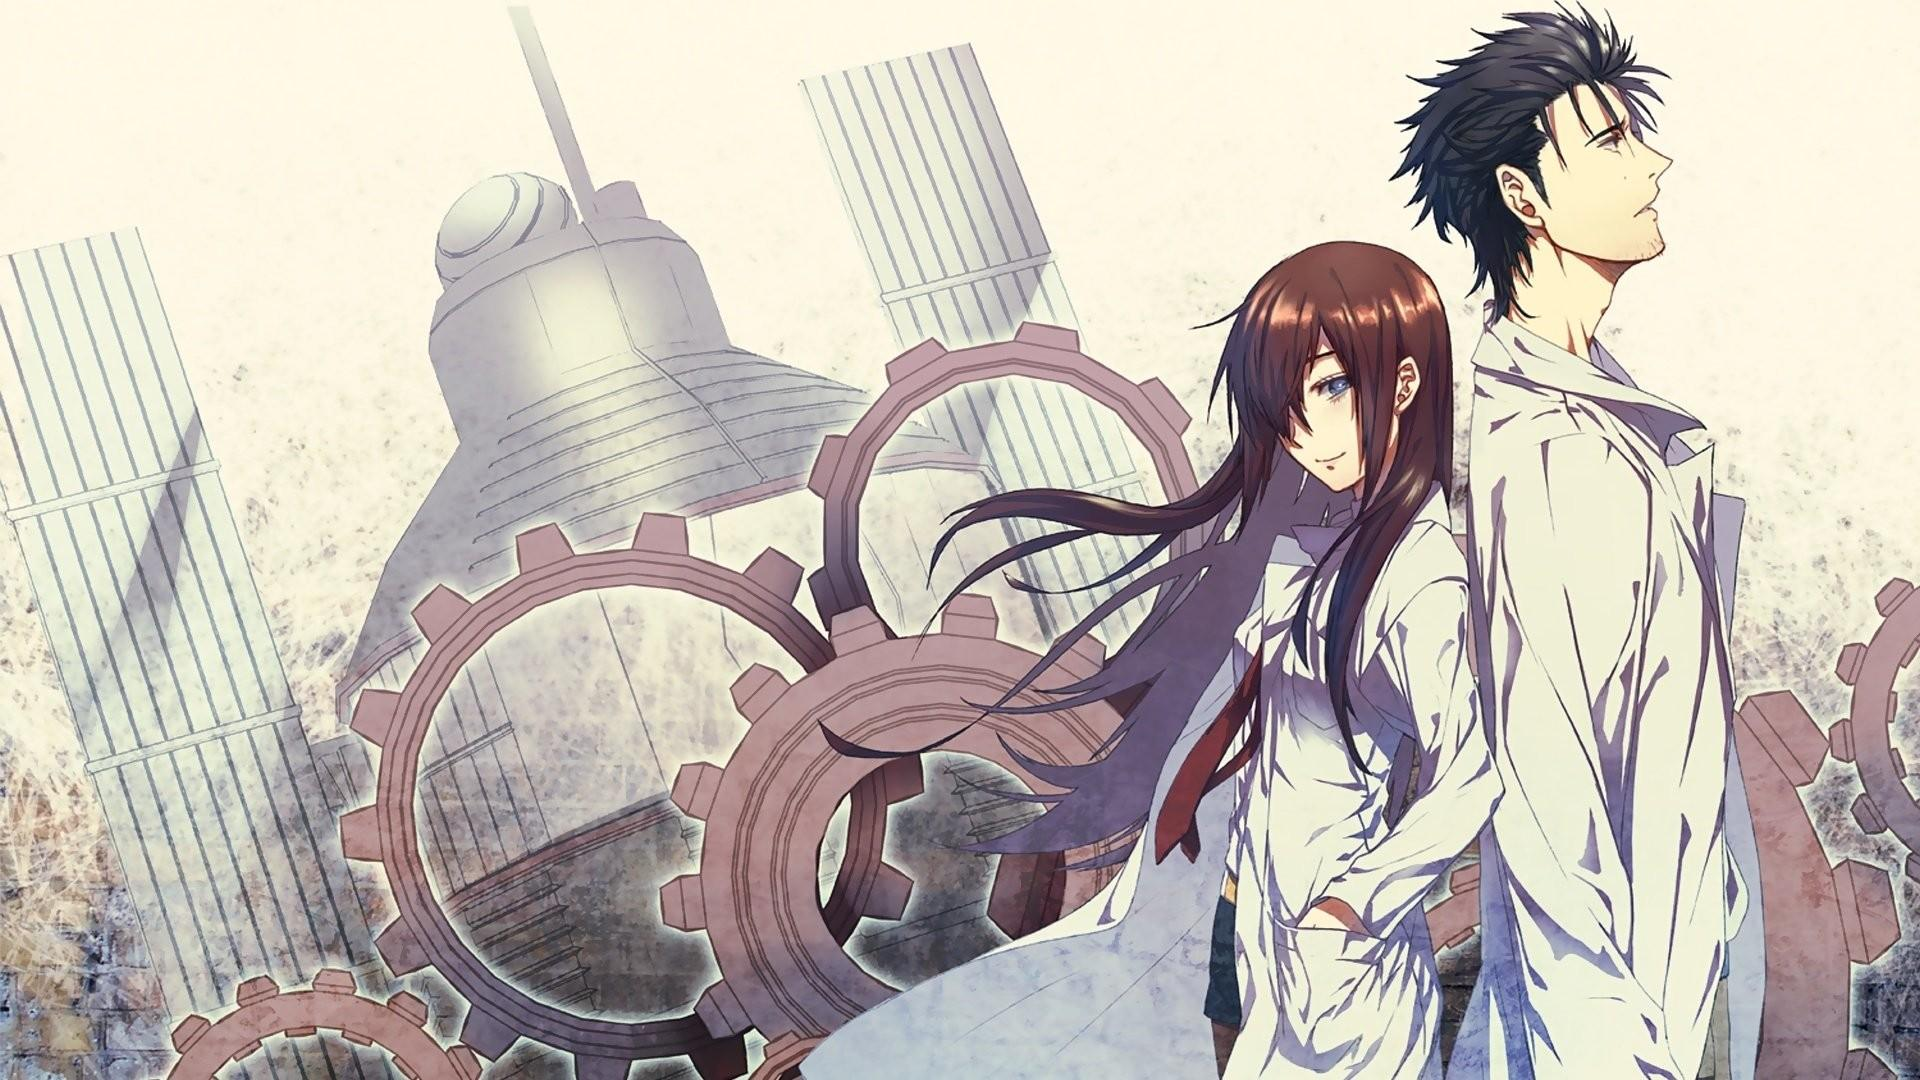 Download Steins Gate Wallpaper Hd Backgrounds Download Itl Cat